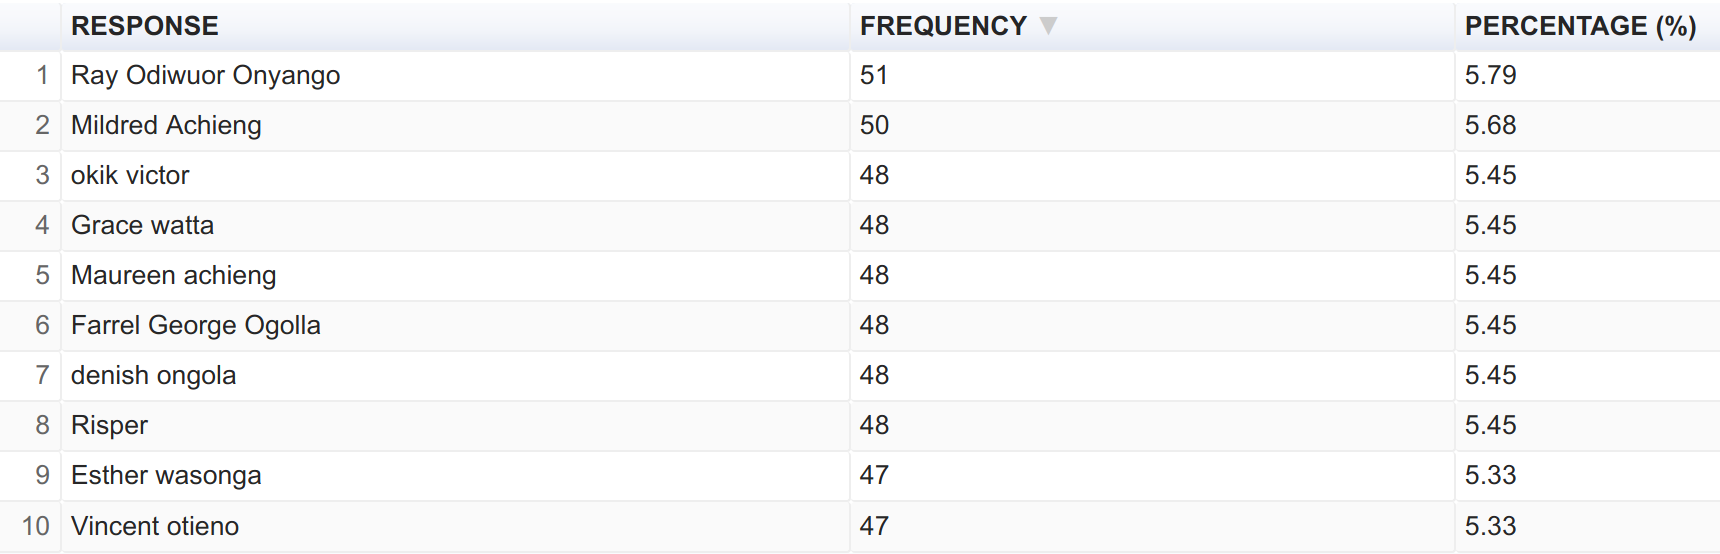 Frequency table data analysis on Hoji